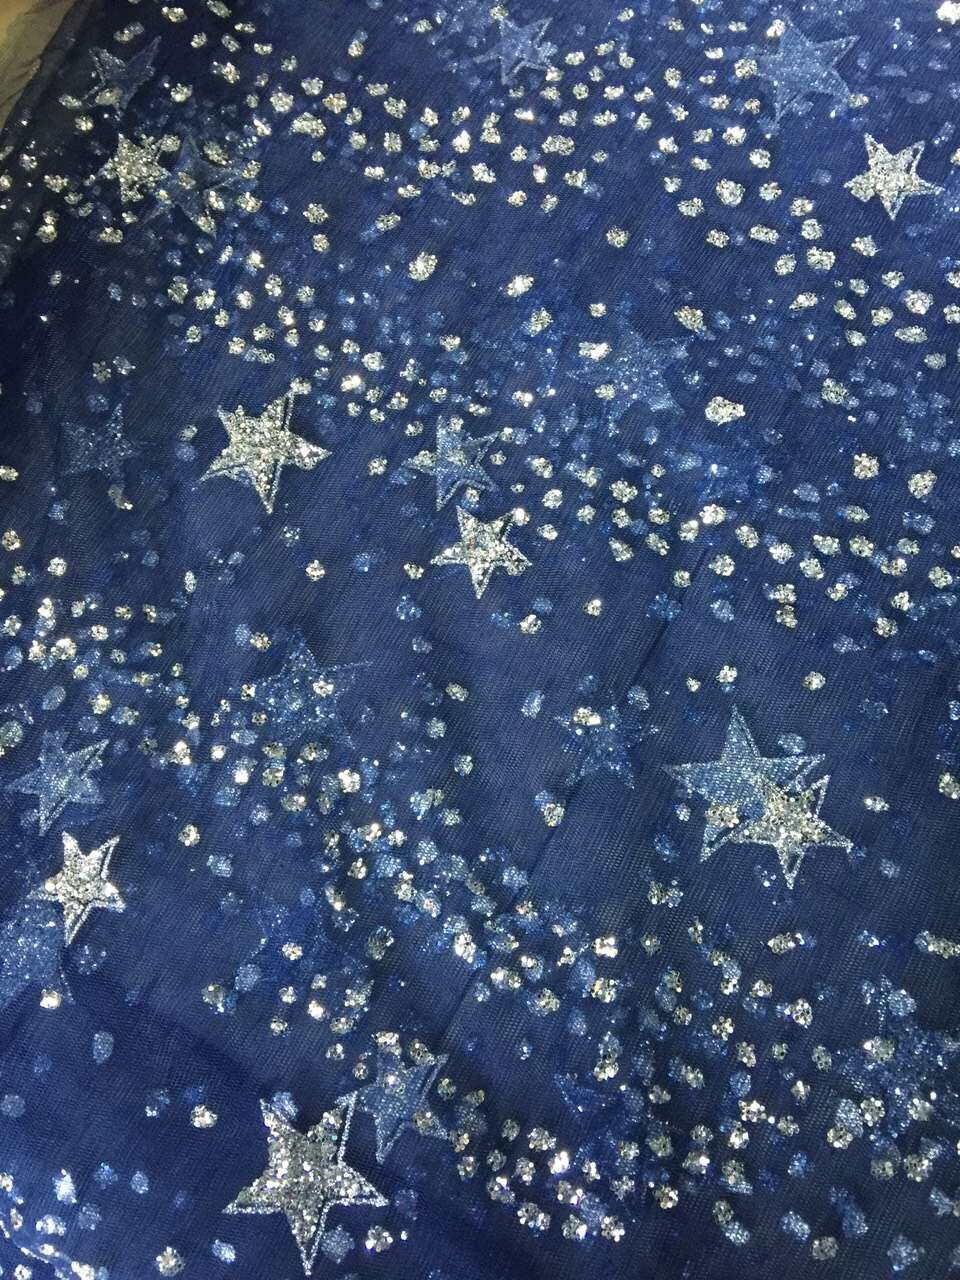 African French net lace fabric CiCi 62153 with glitter embroidery net lace fabric with star pattern